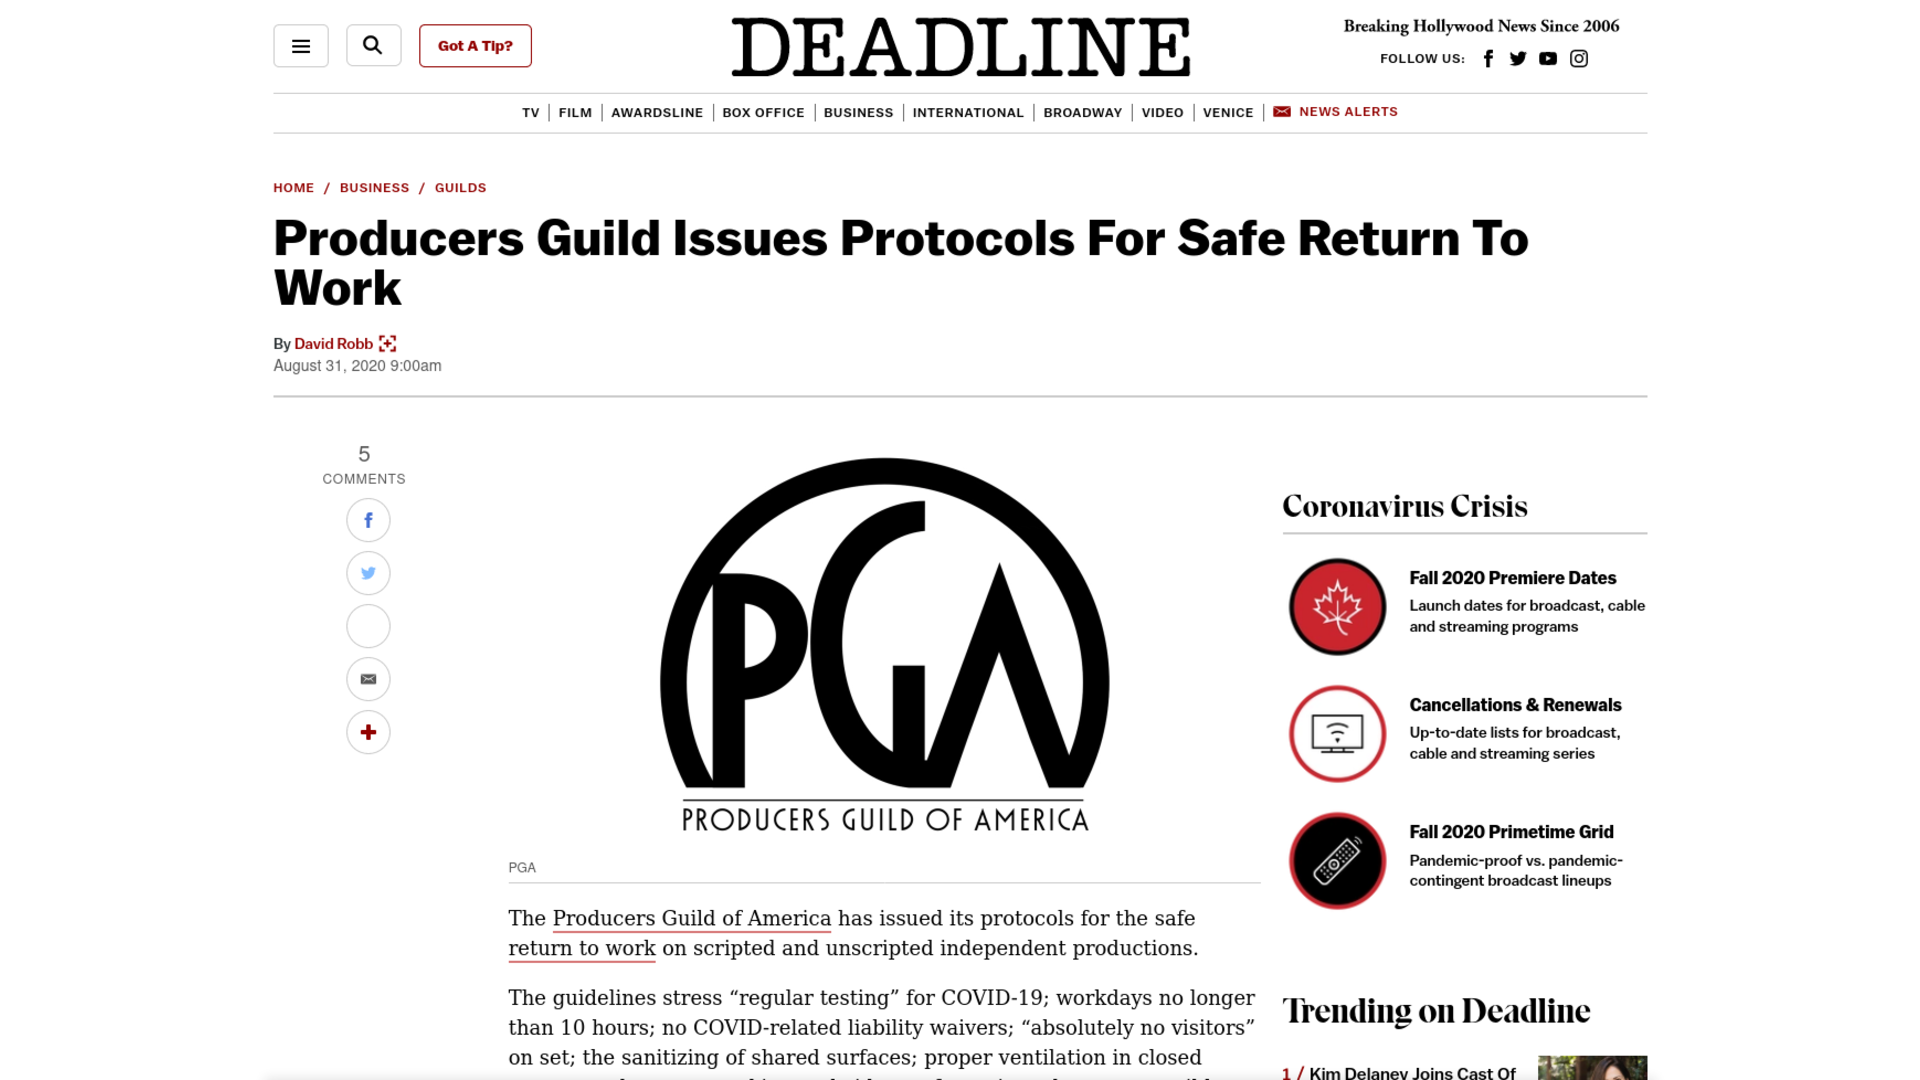 Fairness Rocks News Producers Guild Issues Protocols For Safe Return To Work